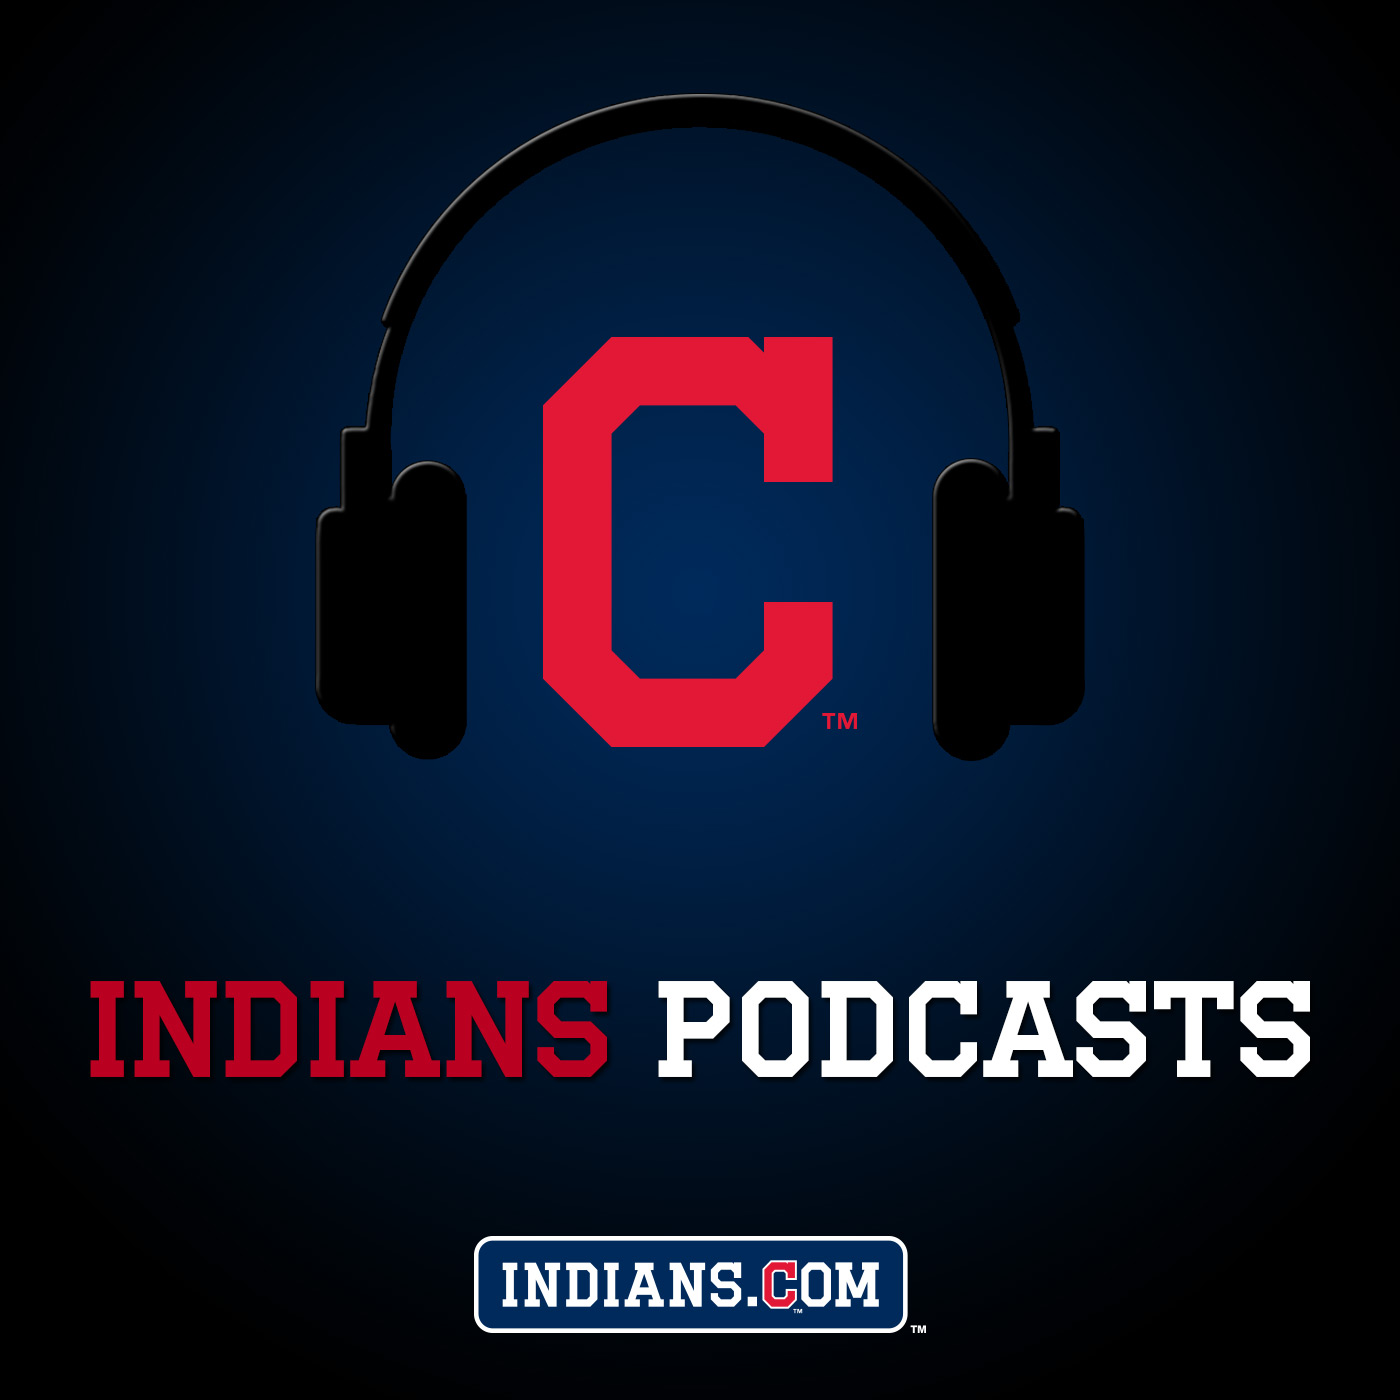 <![CDATA[Cleveland Indians Podcast]]>